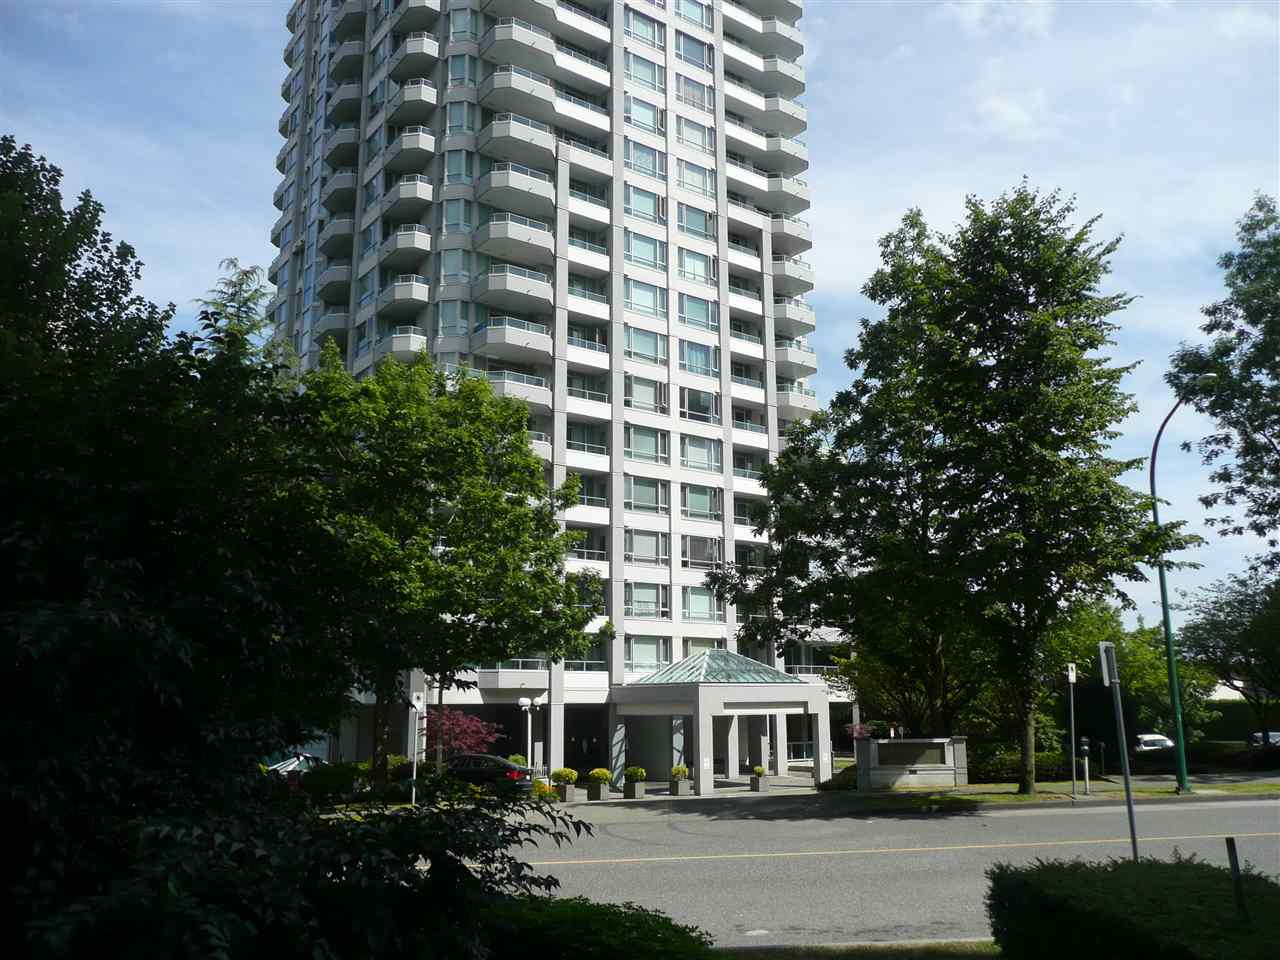 """""""Heart of Metrotown"""" """"PENTHOUSE"""" Fully Rainscreened, updated with new roof, exterior doors, windows, balconies, pipes, pumps, boilers, hallways and warranty. South West exposure corner unit with a phenomenal view of Mount Baker, Ocean, mnts, Stanley Park & Metrotown City lights. Large spacious appro 500 Sq Ft wrap-around balcony, inside storage, gas fireplace, some 9' ceilings, insuite laundry, large kitchen with eating area. Great recreation facilities, gym, pool, Jaccuzzi. Central location, walk to Metrotown, Crystal Mall, Skytrain and schools. Buyer must verify measurements. Quick possession. Open House Sunday Jan 21, 2018, 2 to 4 PM."""